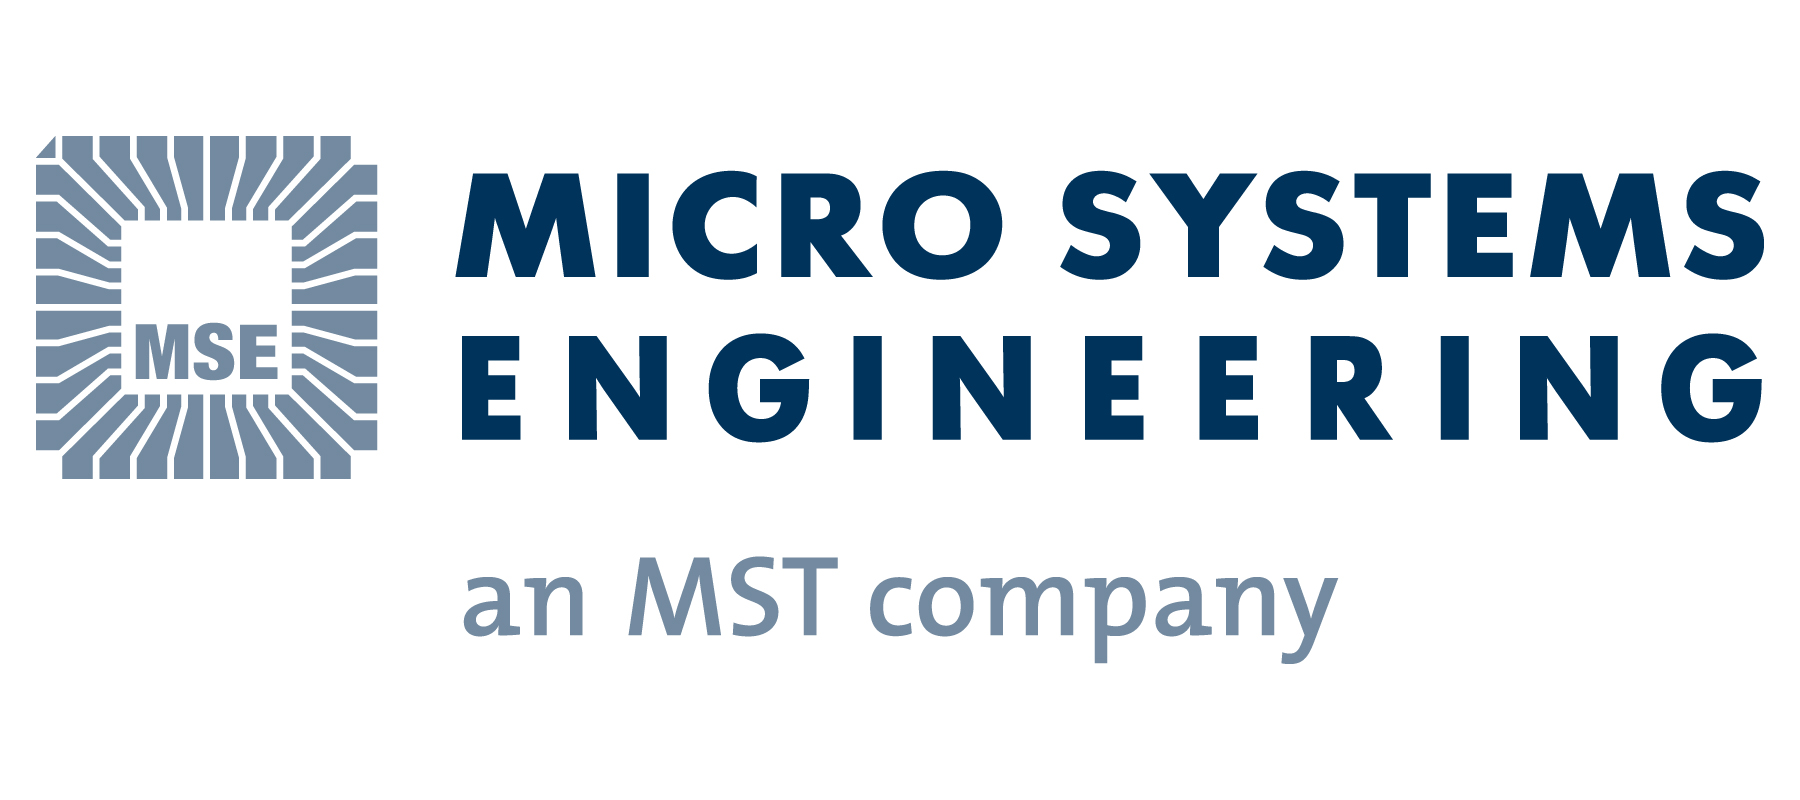 Micro Systems Engineering, Inc